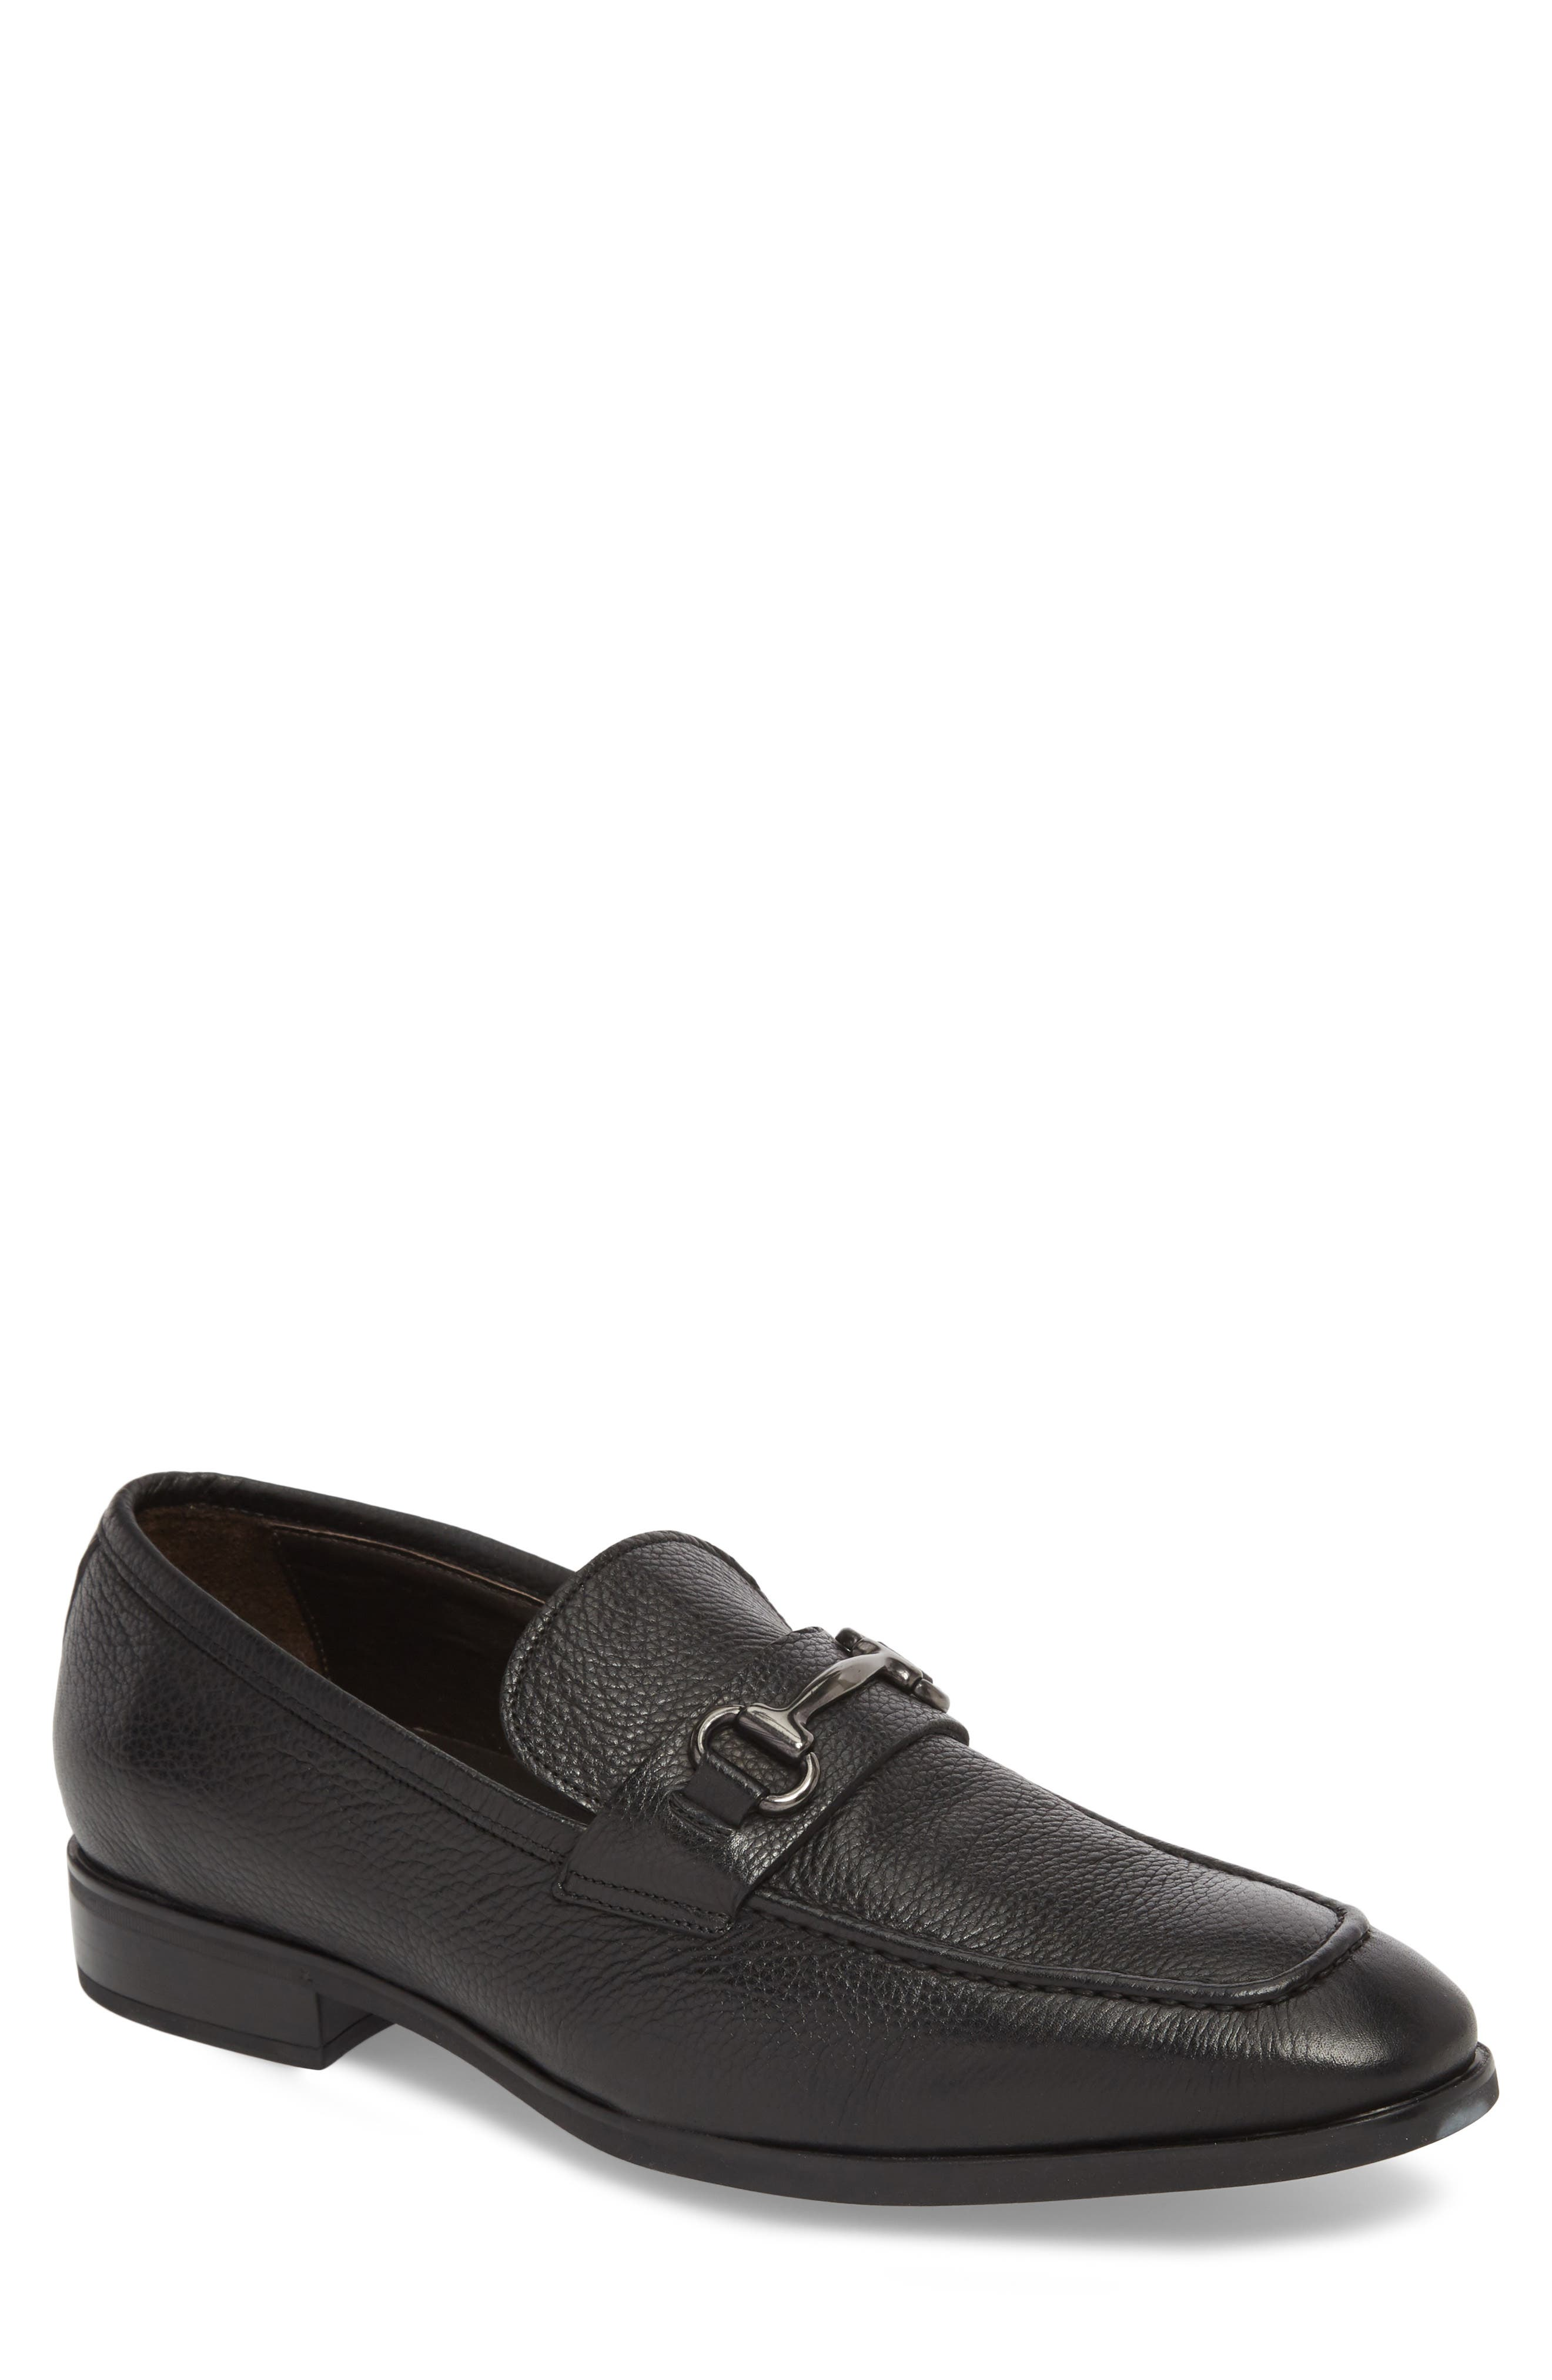 Brussels Bit Loafer,                             Main thumbnail 1, color,                             Black Leather